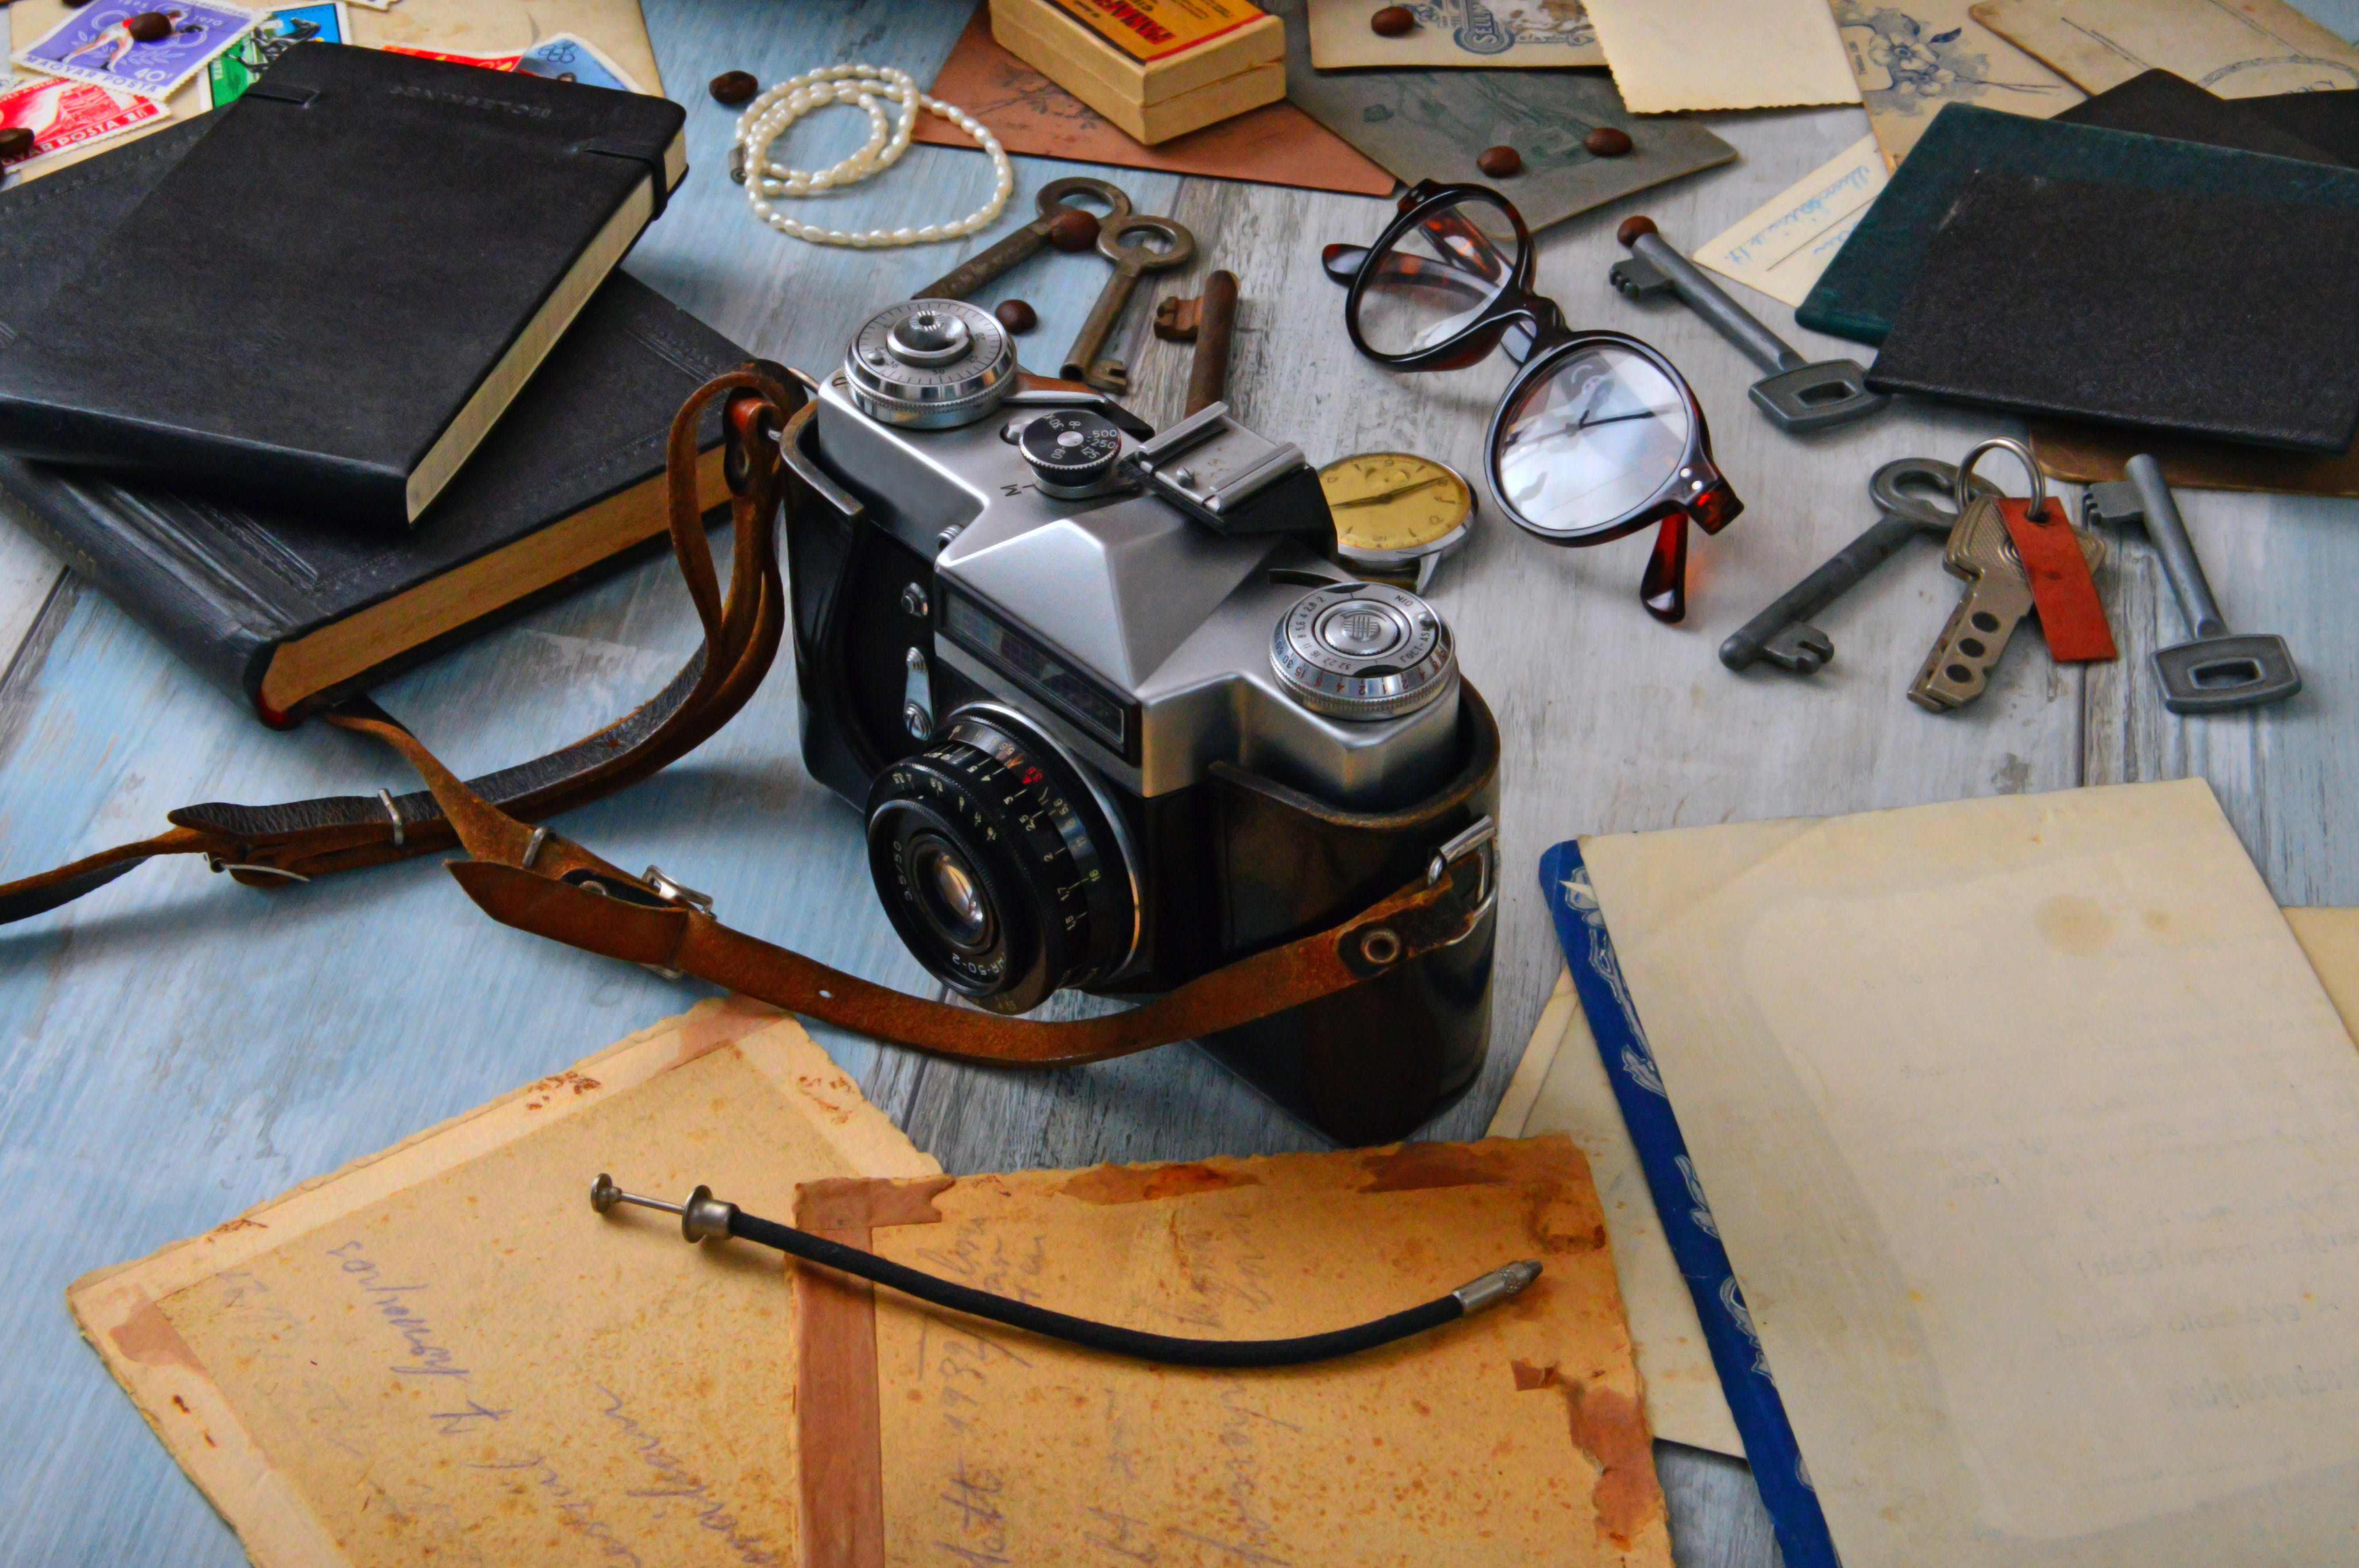 Black and Gray Camera on Table Surrounded by Books